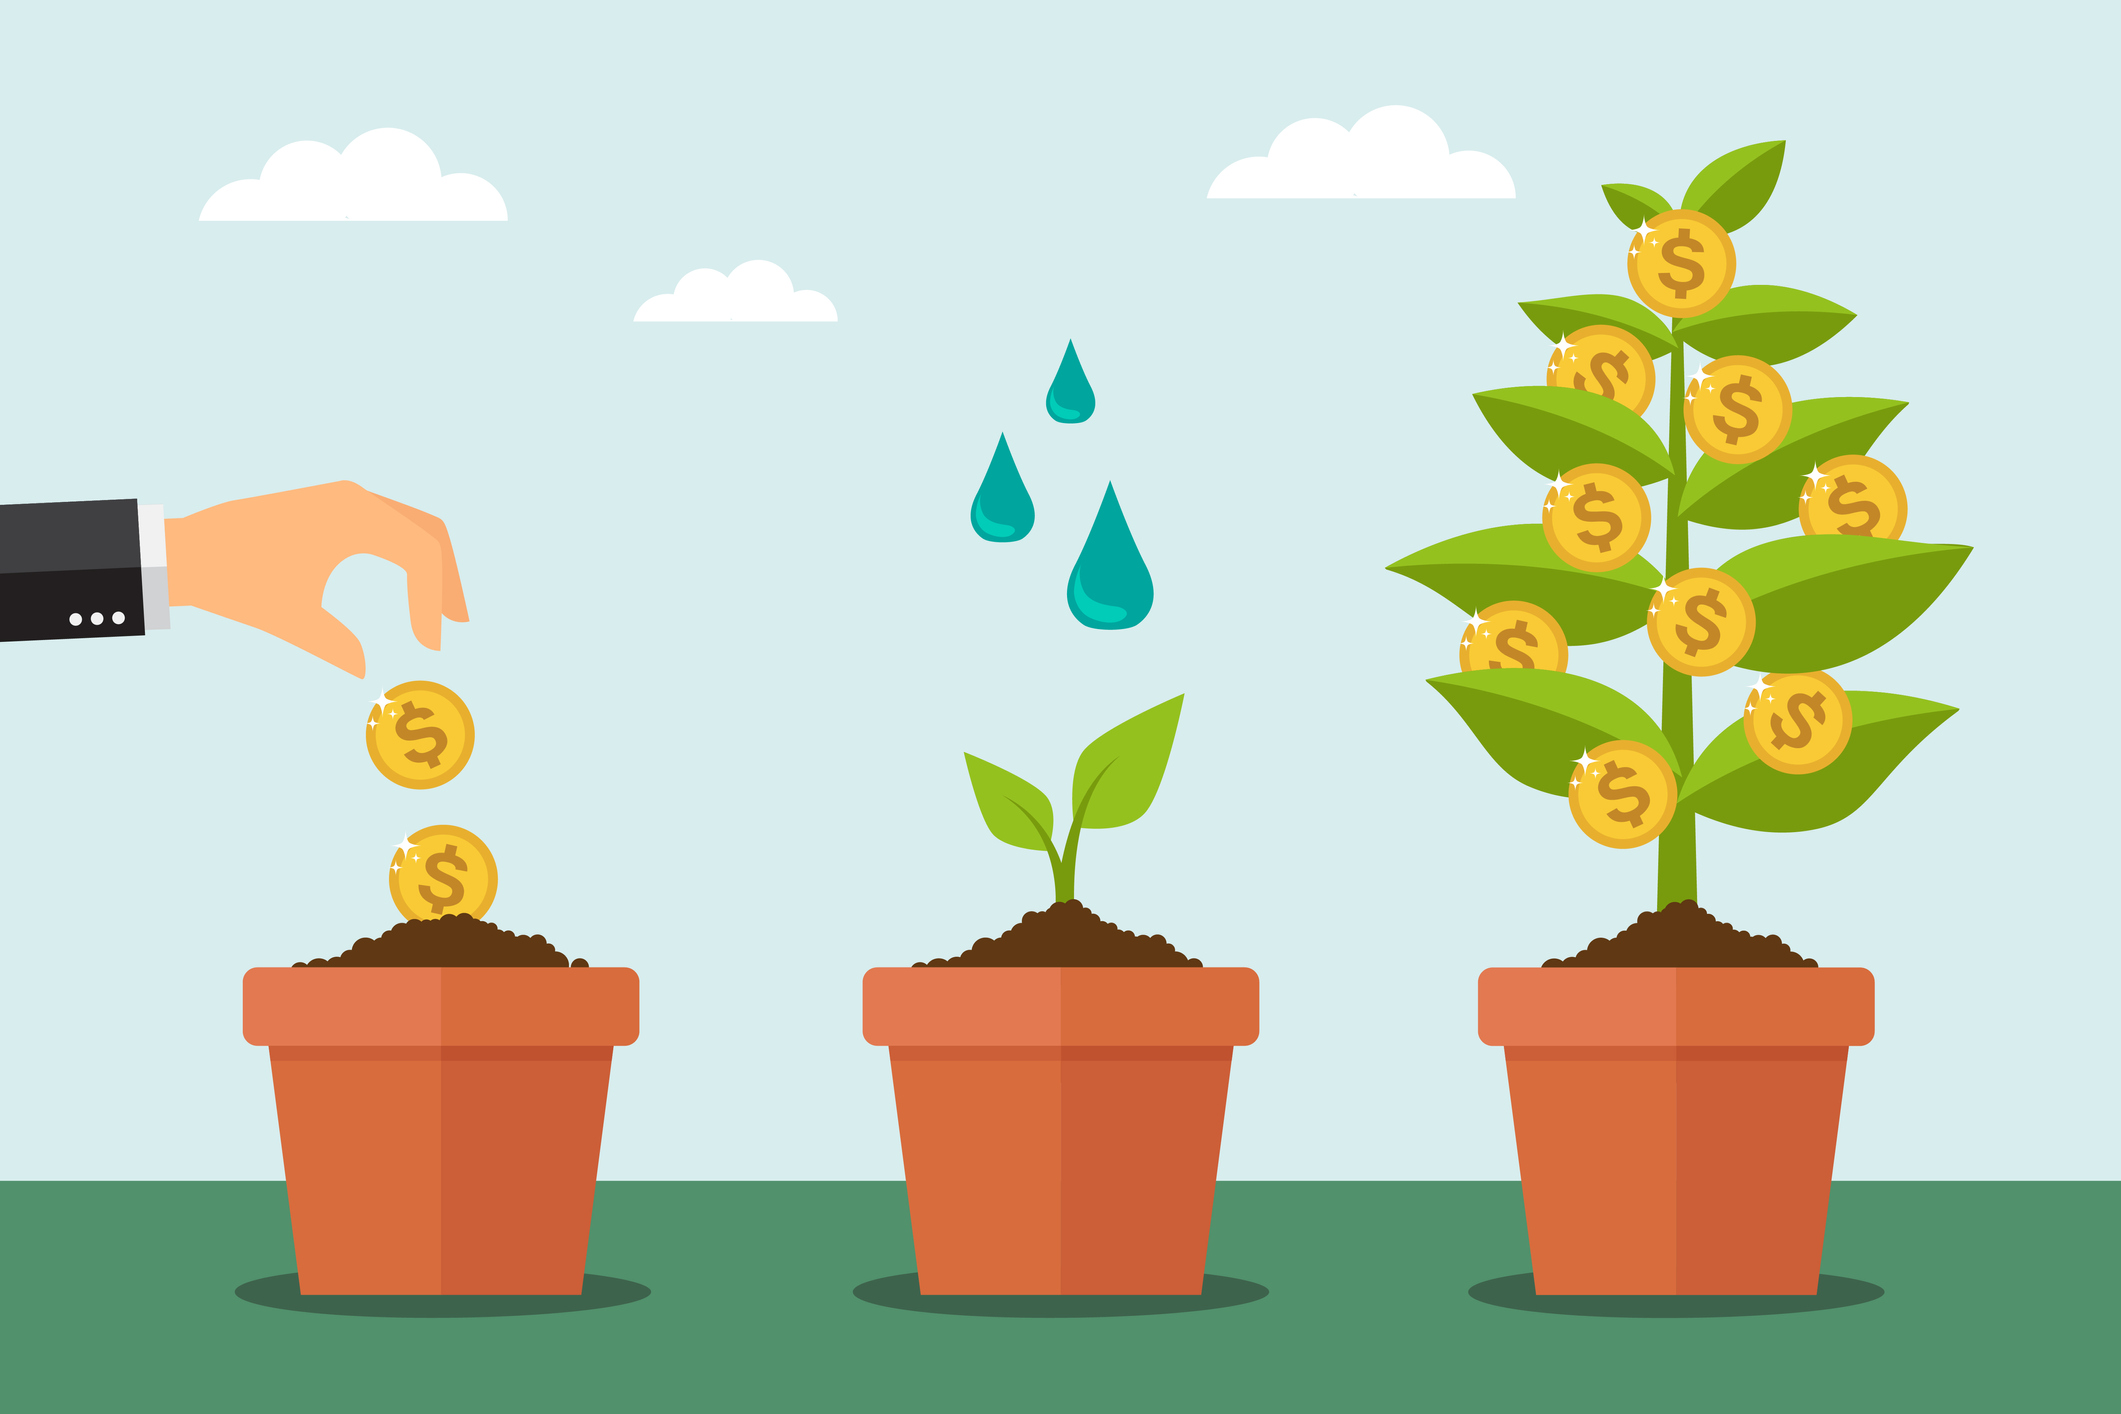 Funding growth: How financial projections can help